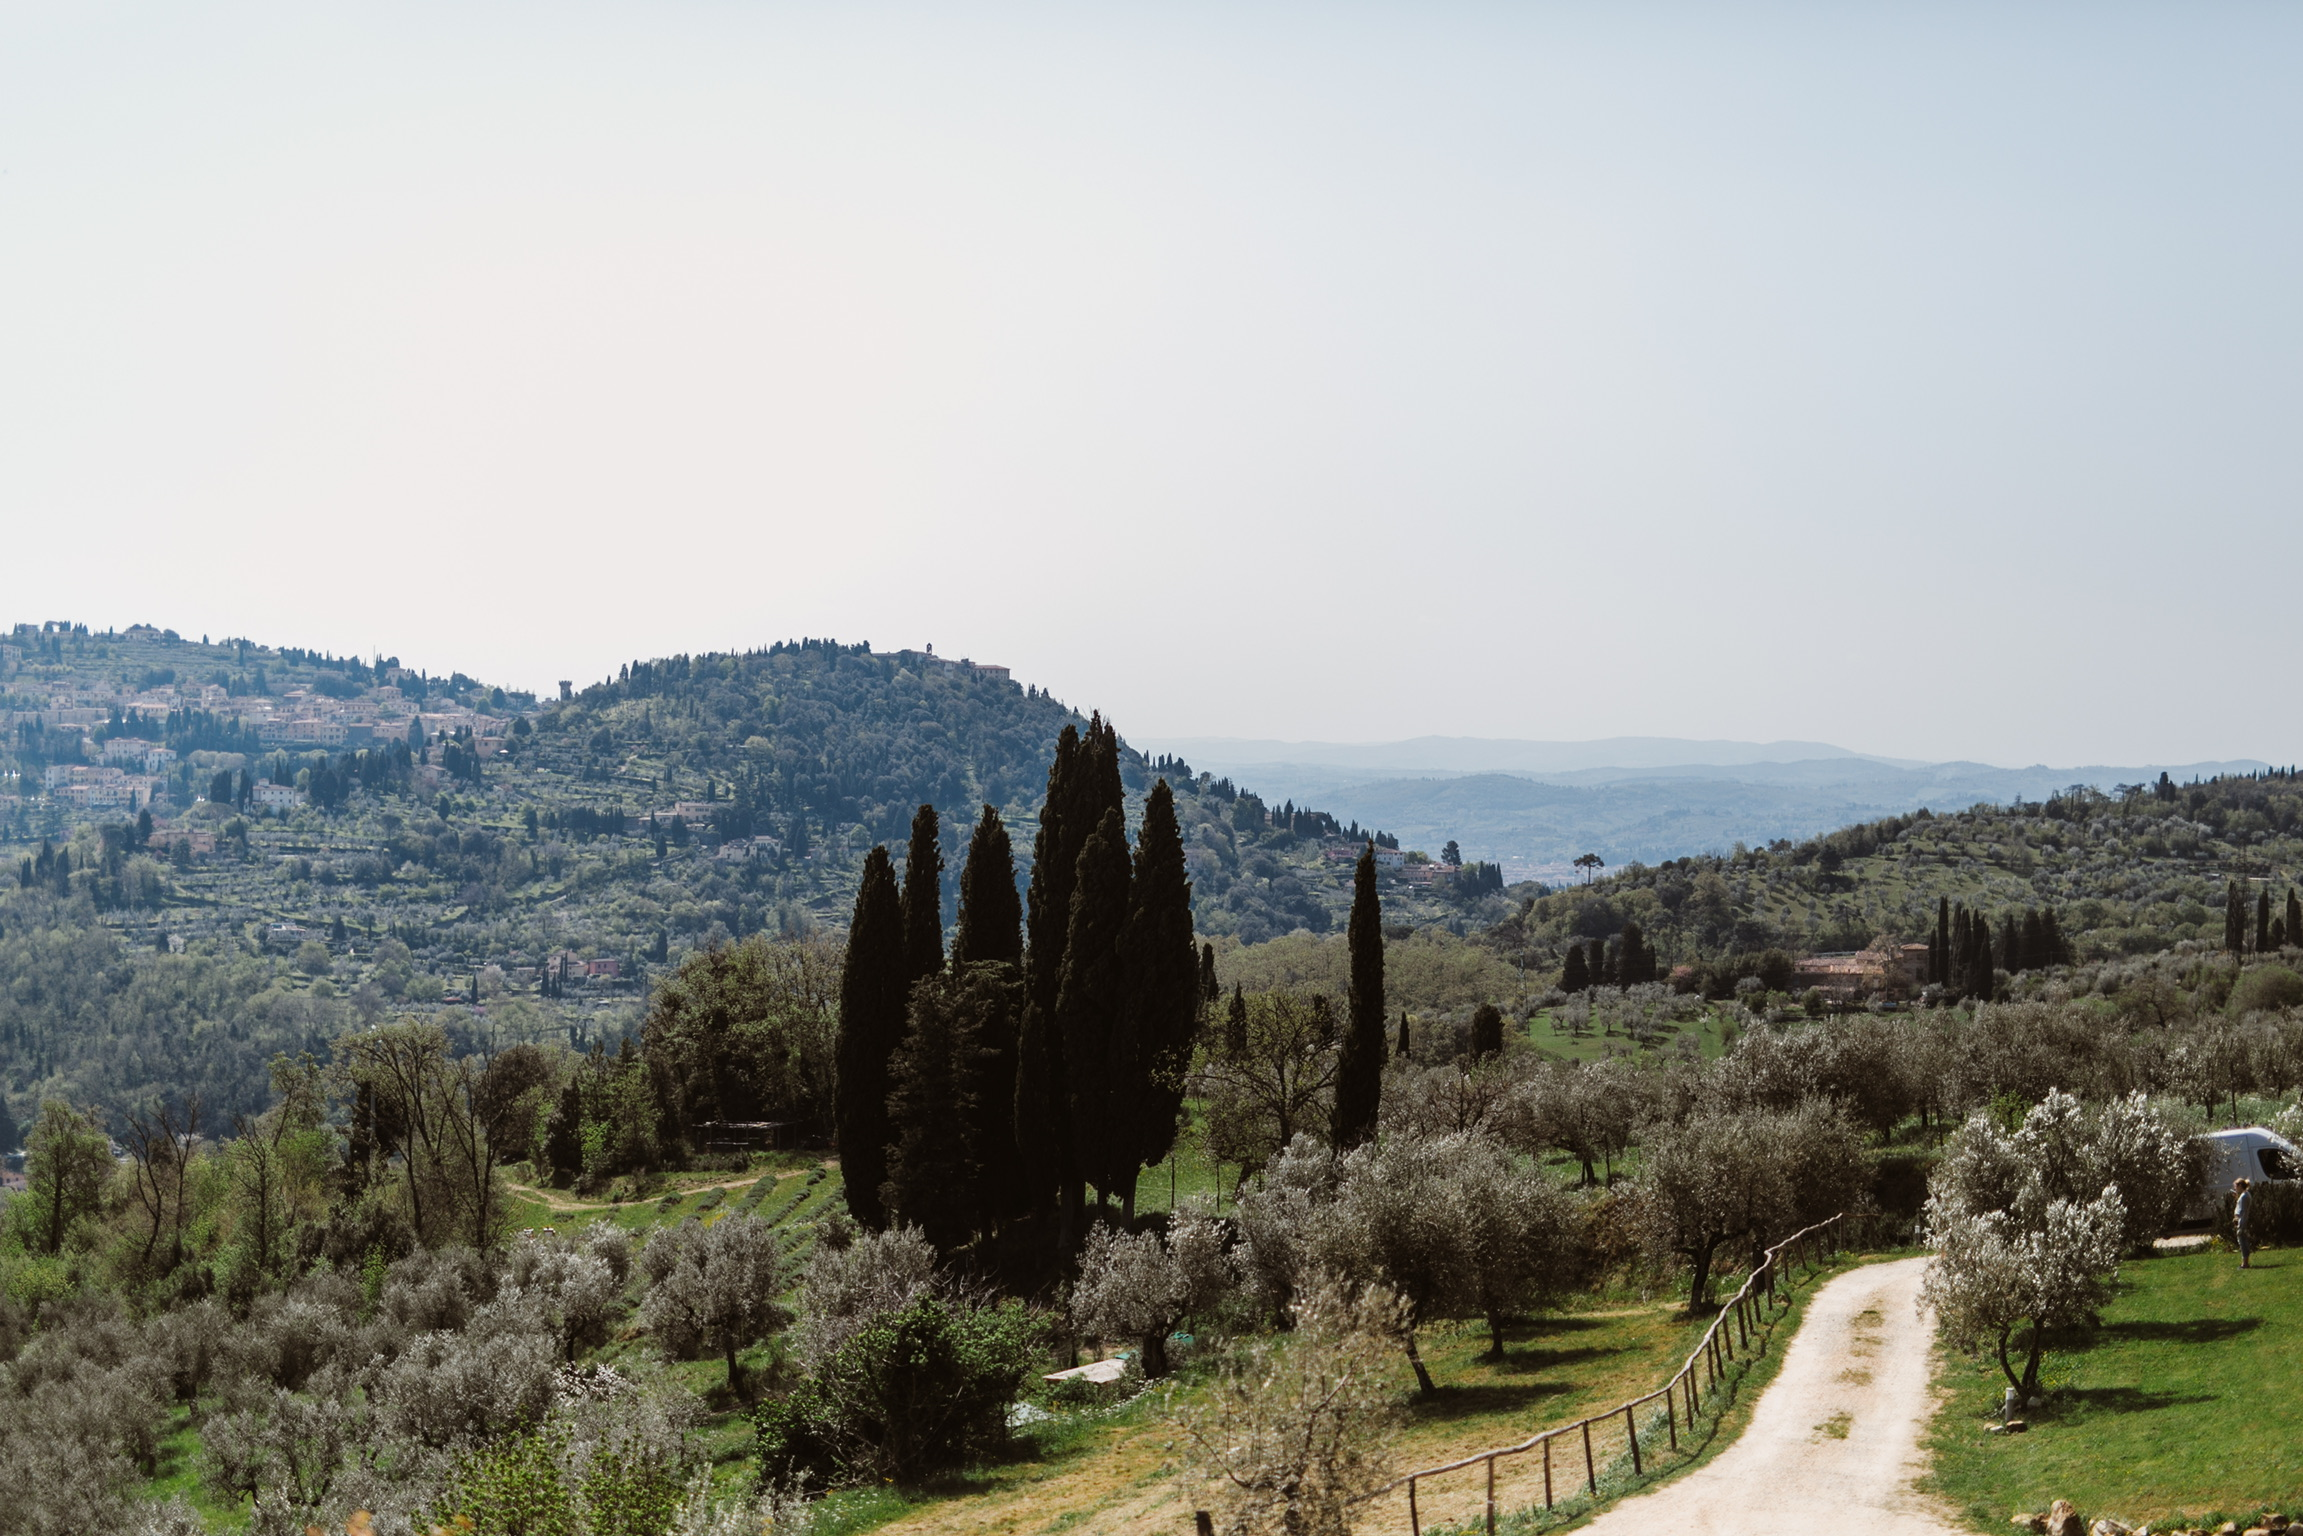 The view from the front door of our villa. The drive from the city center of Florence to our place was seriously majestic.